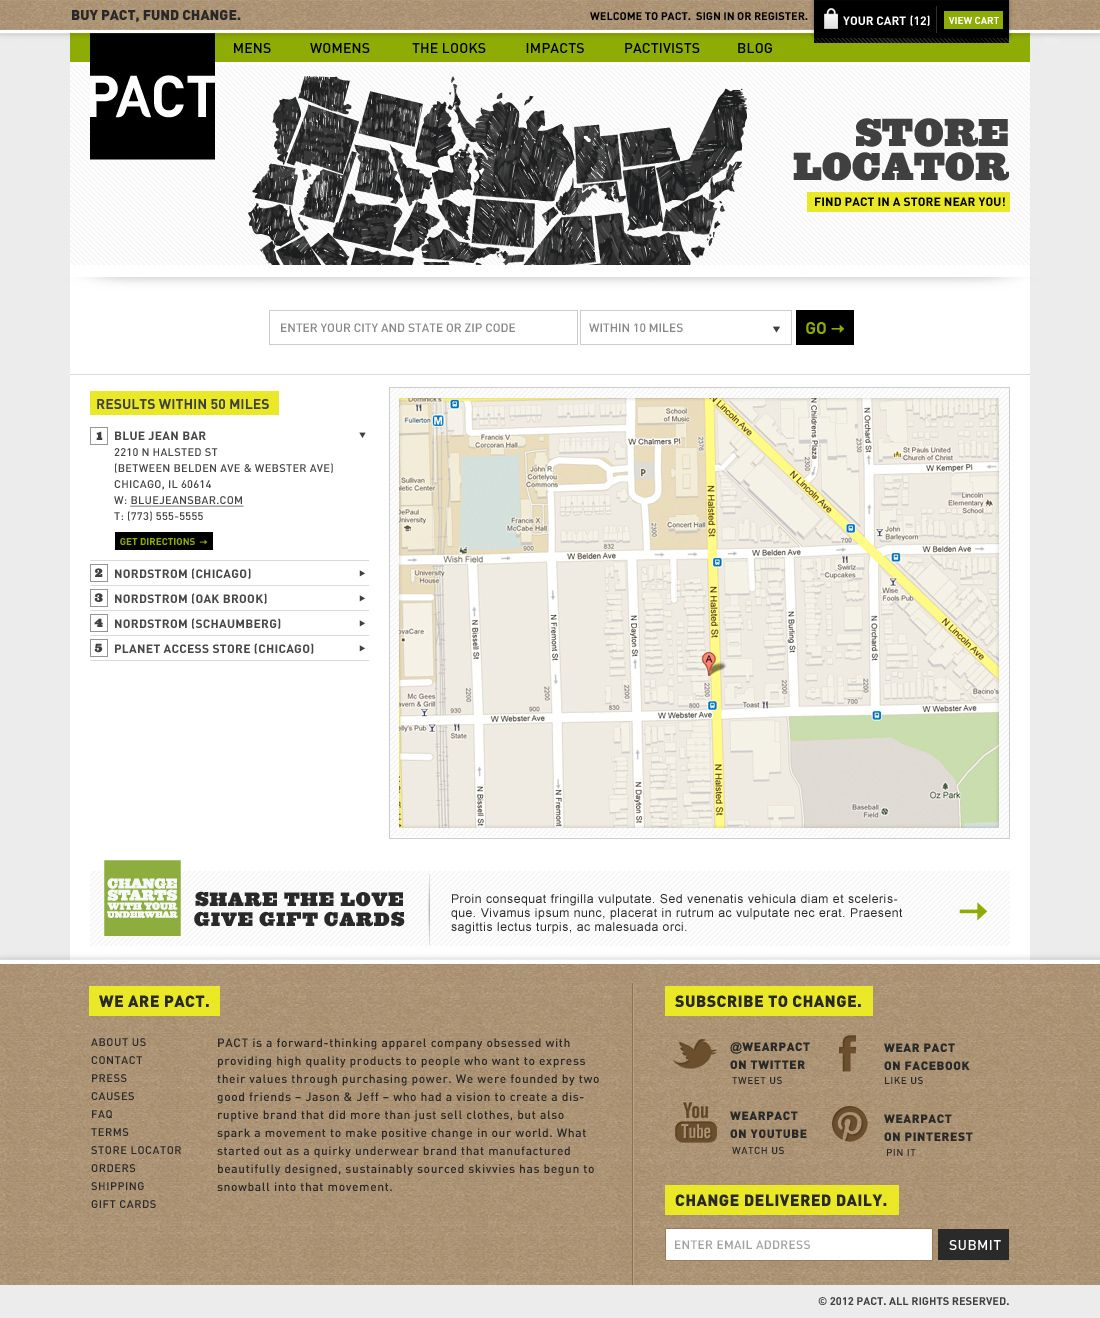 PACT Store Locator page   Ecommerce inspiration, Share the